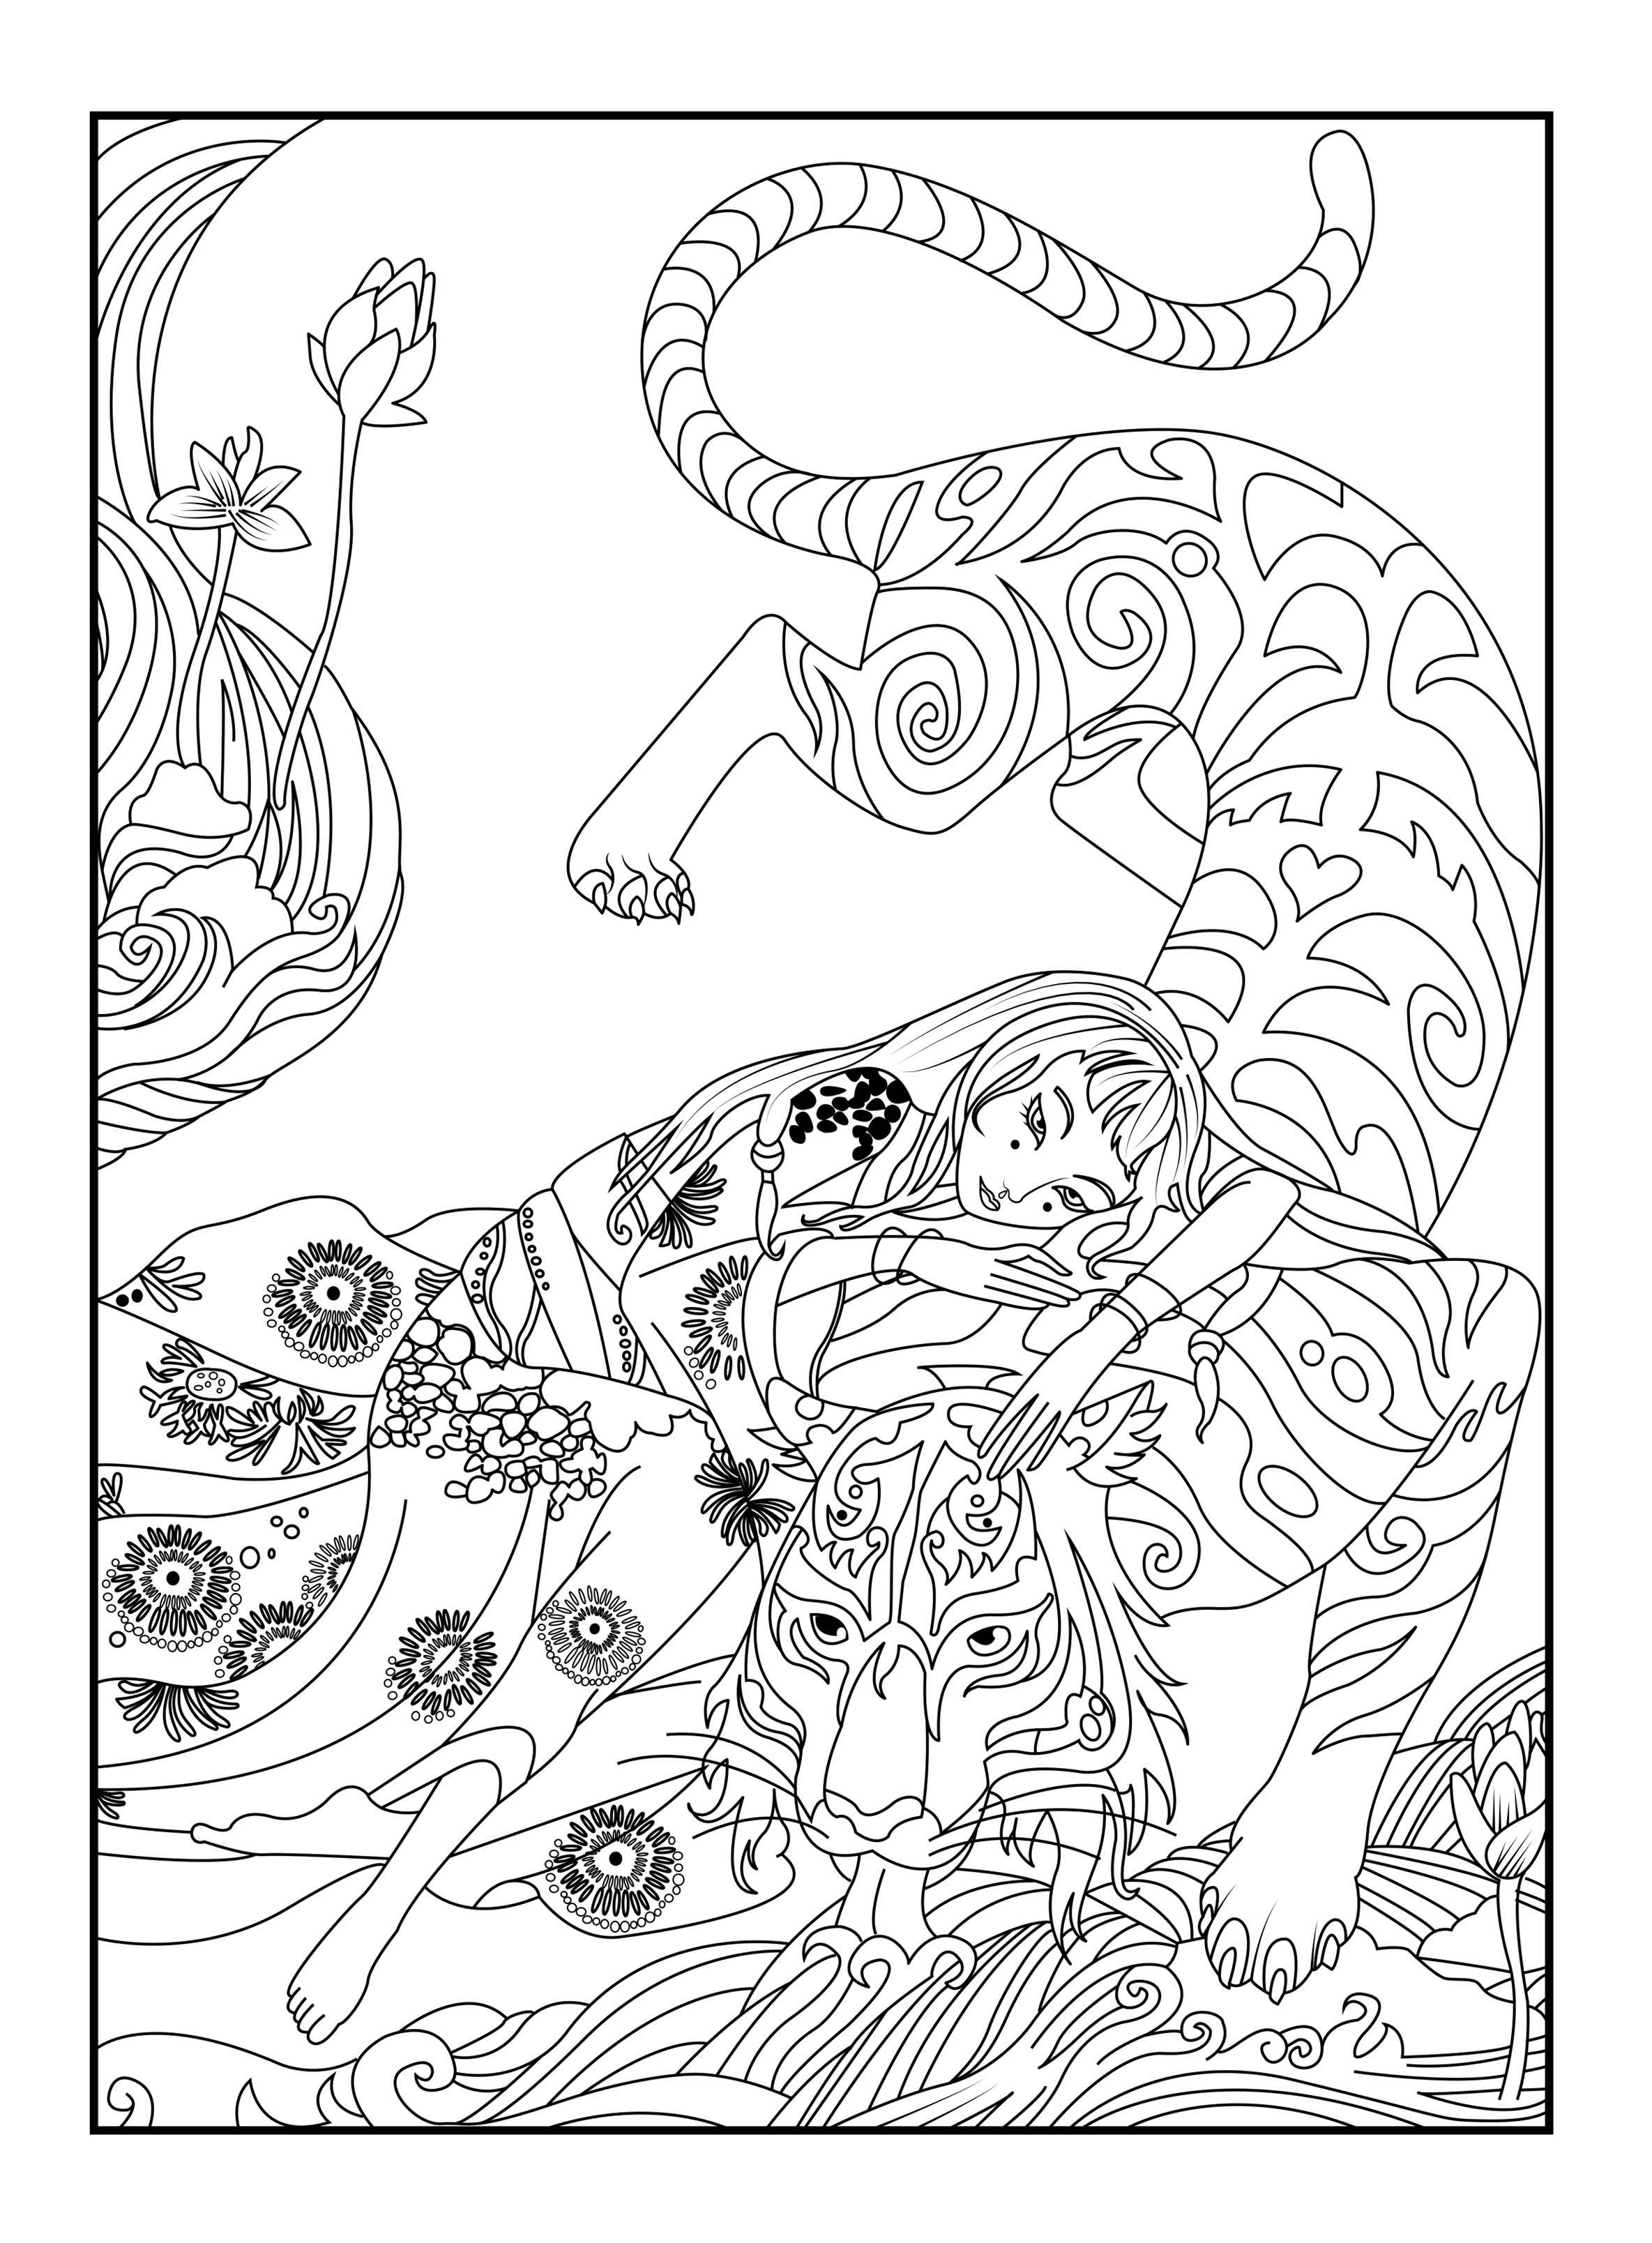 Here is a coloring page with a tiger by Céline